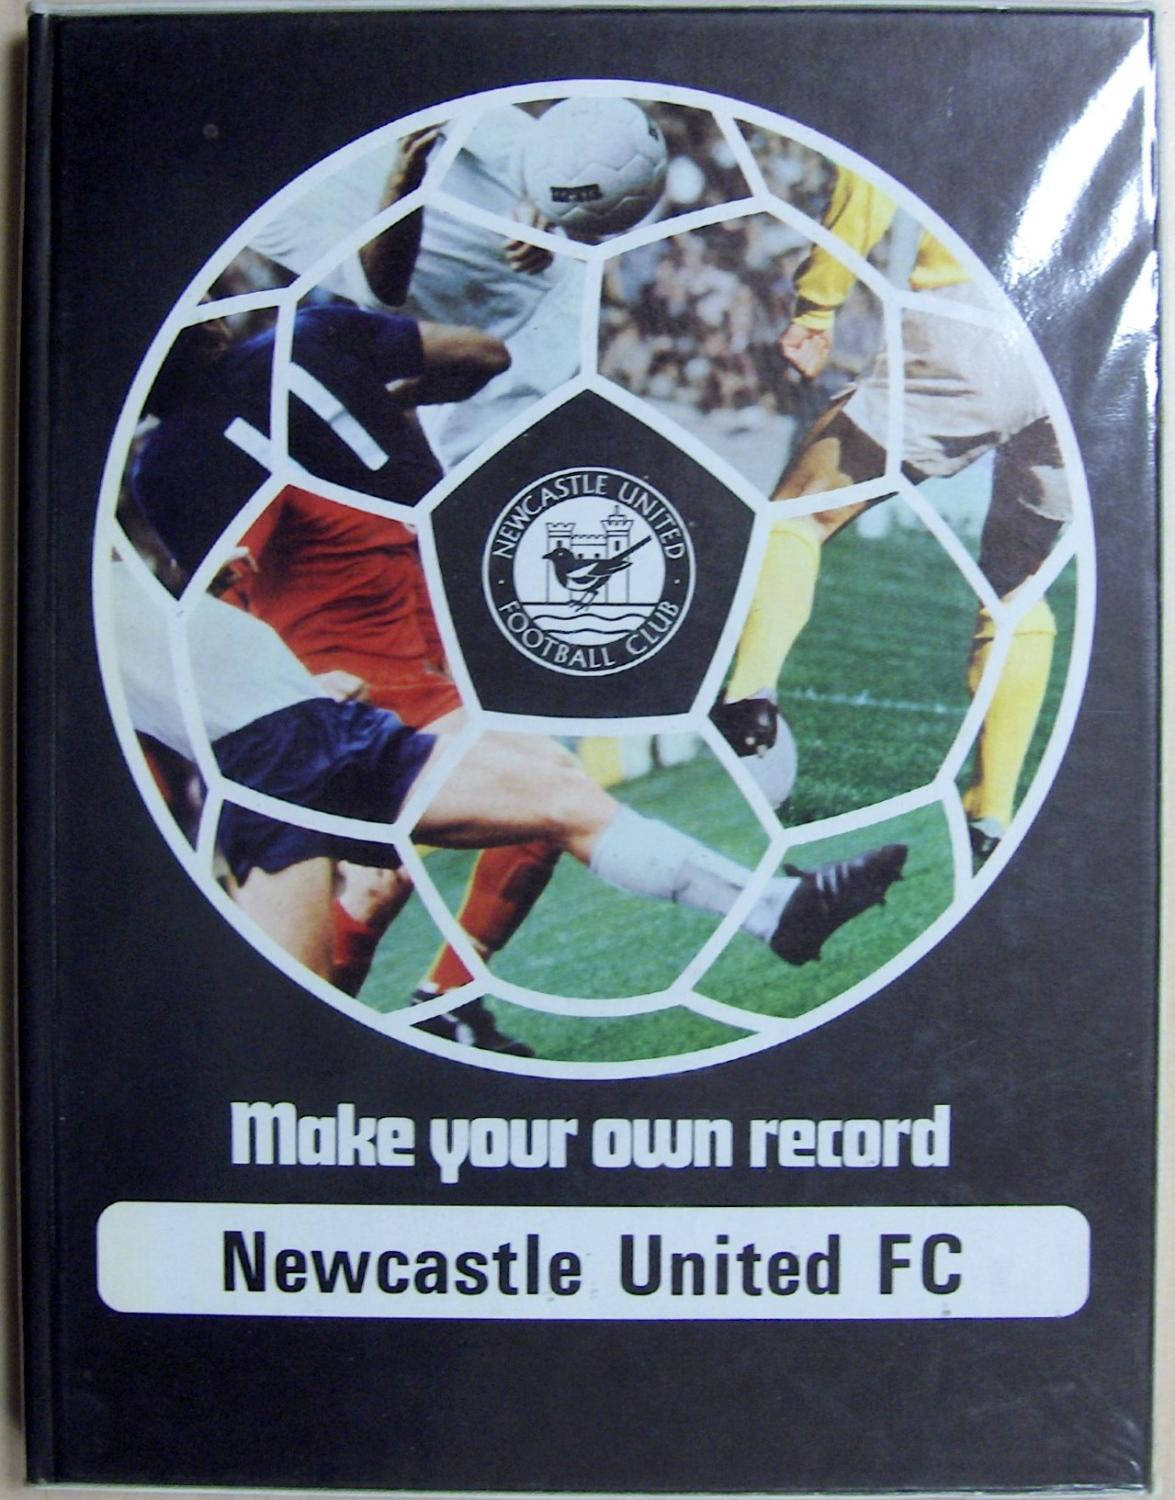 Make your own record: Newcastle United FC Newcastle United FC